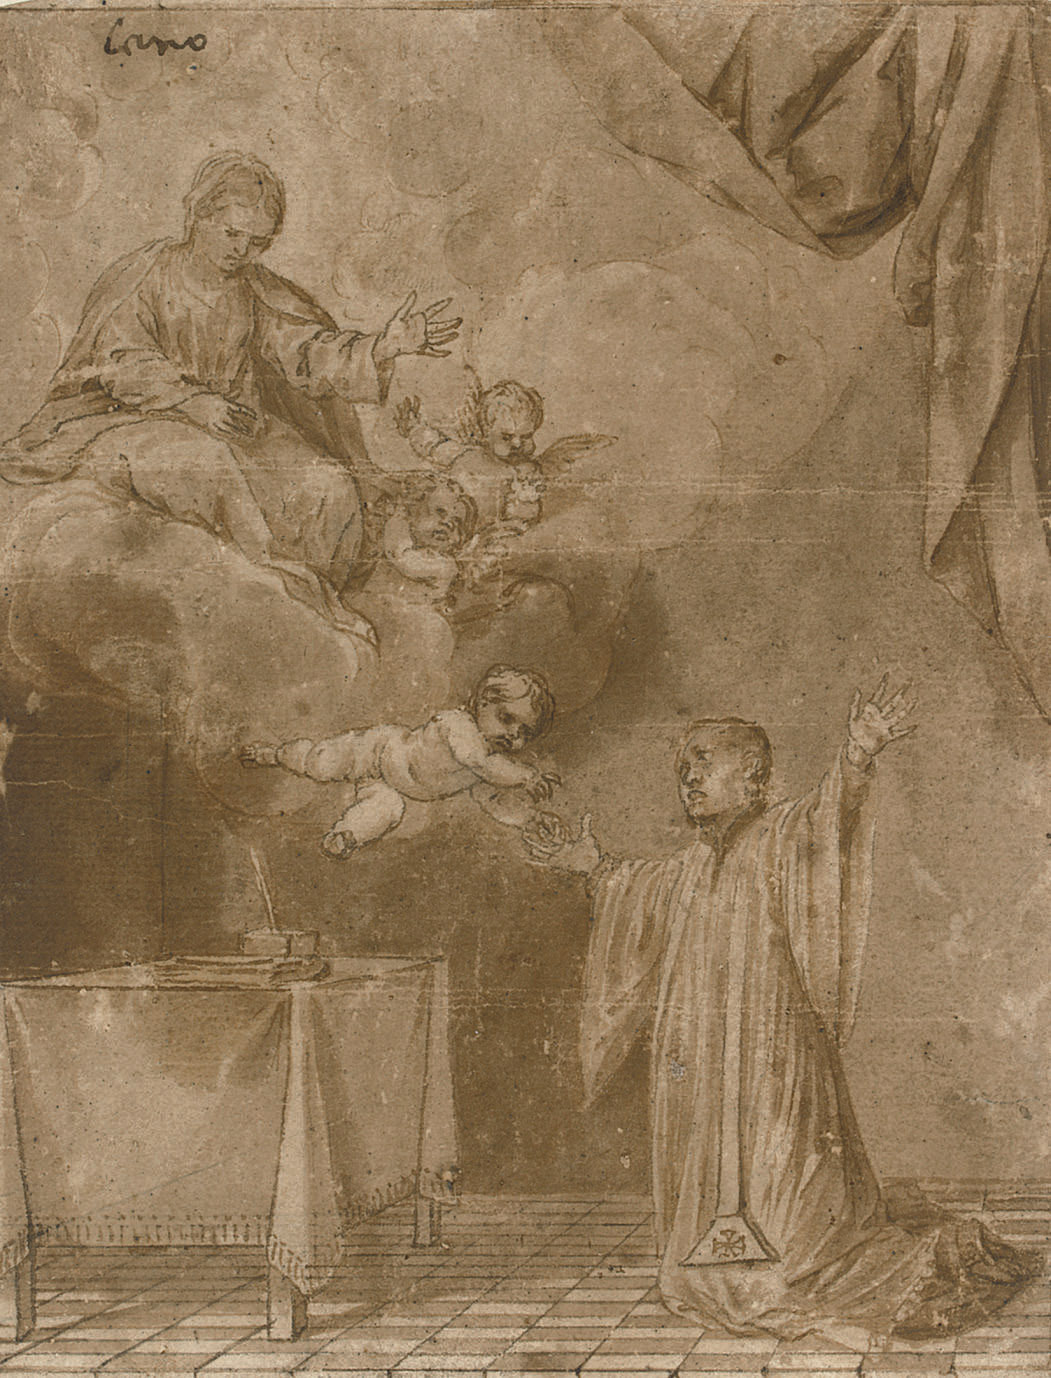 The Christ Child appearing to Saint Simon Stock